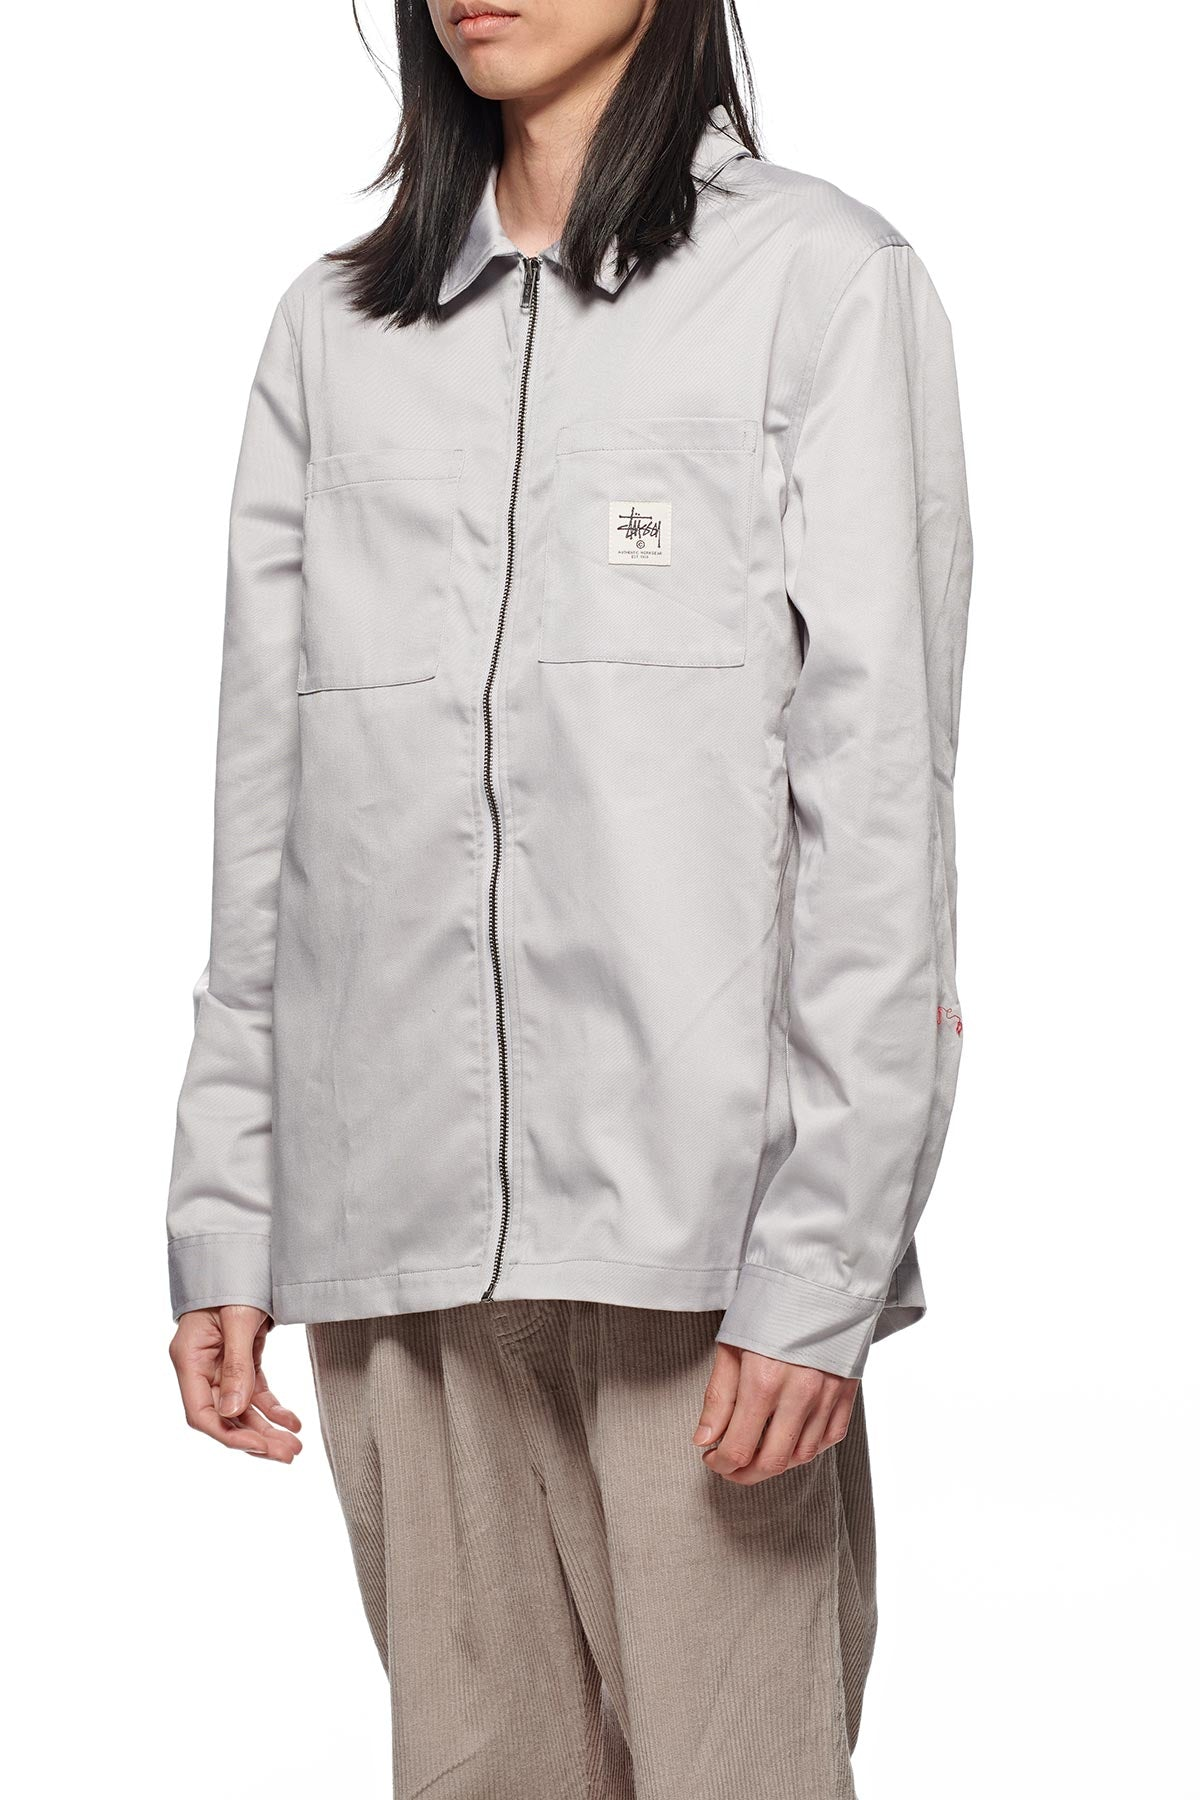 Workwear Zip Jacket - R8gzwear